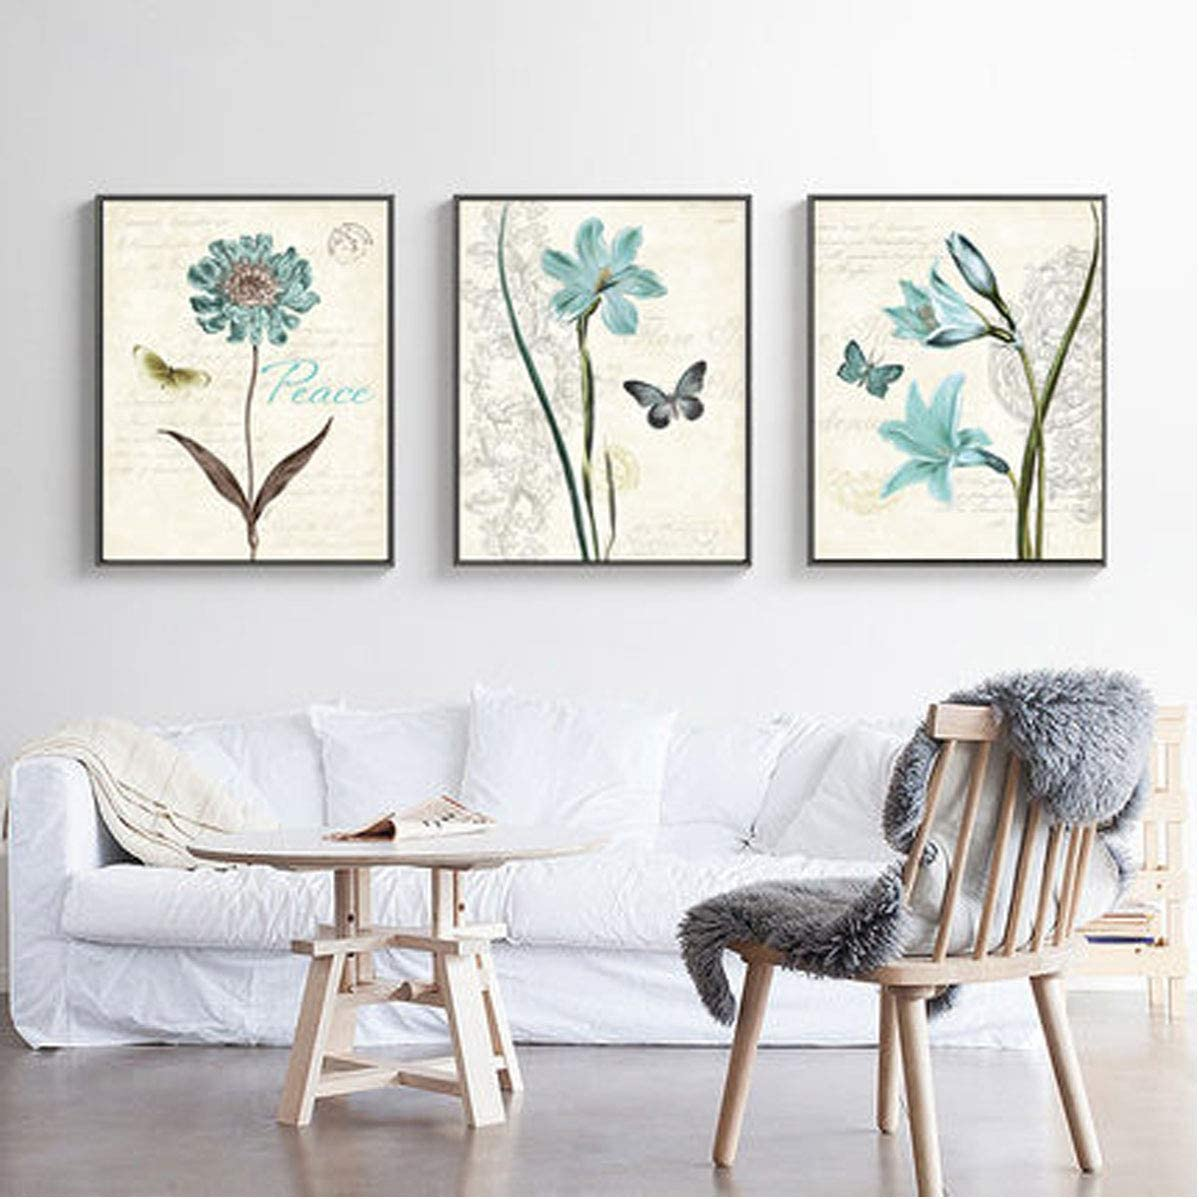 Fltaheroo 5 Panels 5D DIY Full Square Diamond Painting Abstract Flowers Multi-Picture Combination 3D Embroidery Kit Home Decor Style1